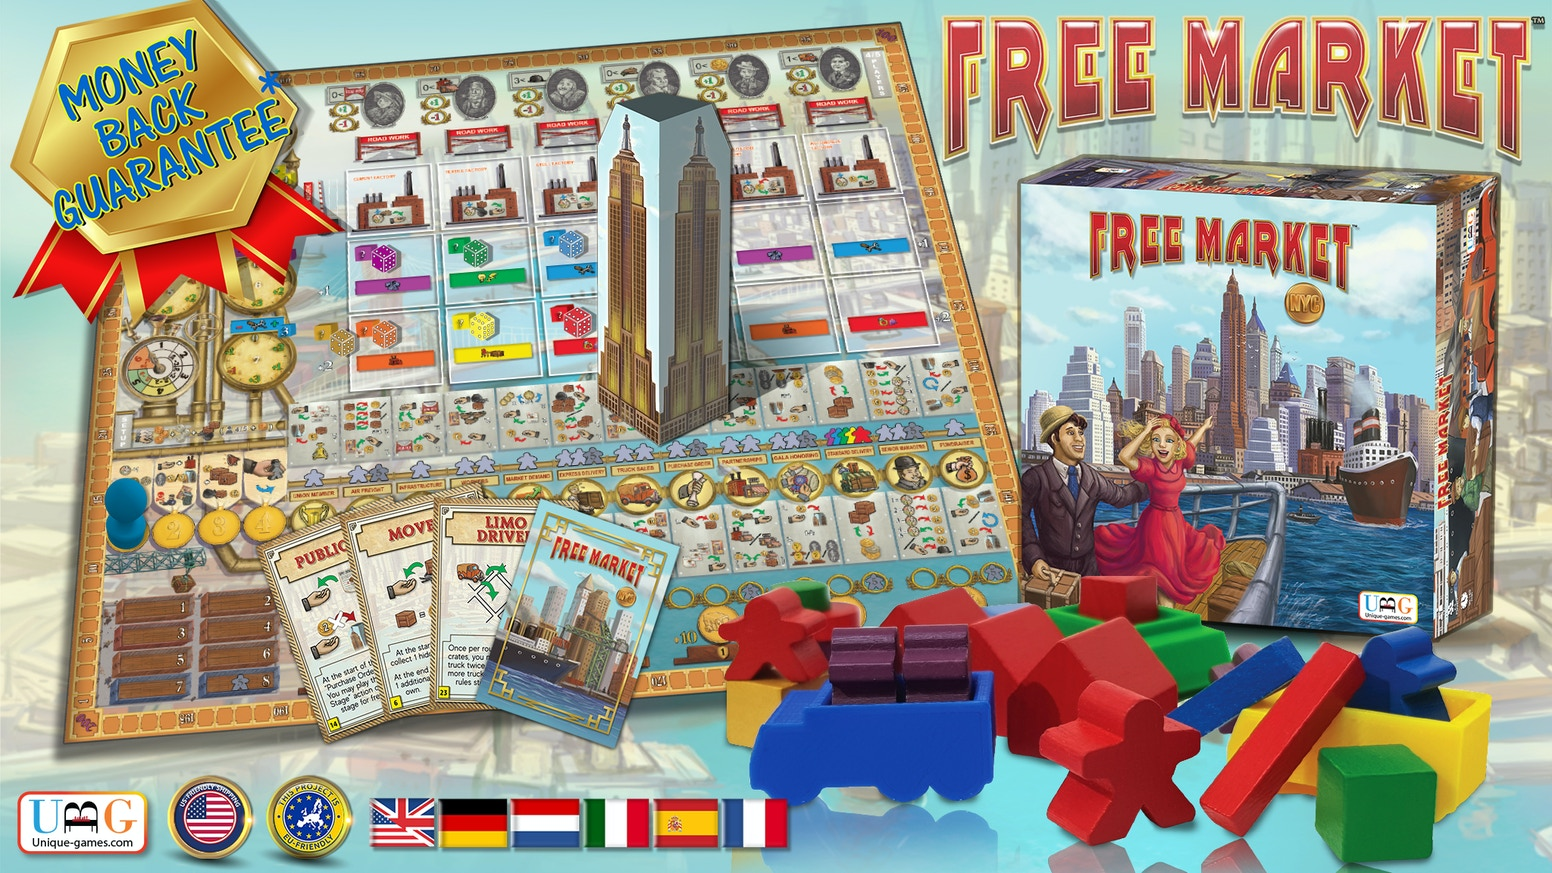 FREE MARKET is a social board game based on worker placement & resource management, involving cartoonish characters and humorous twists